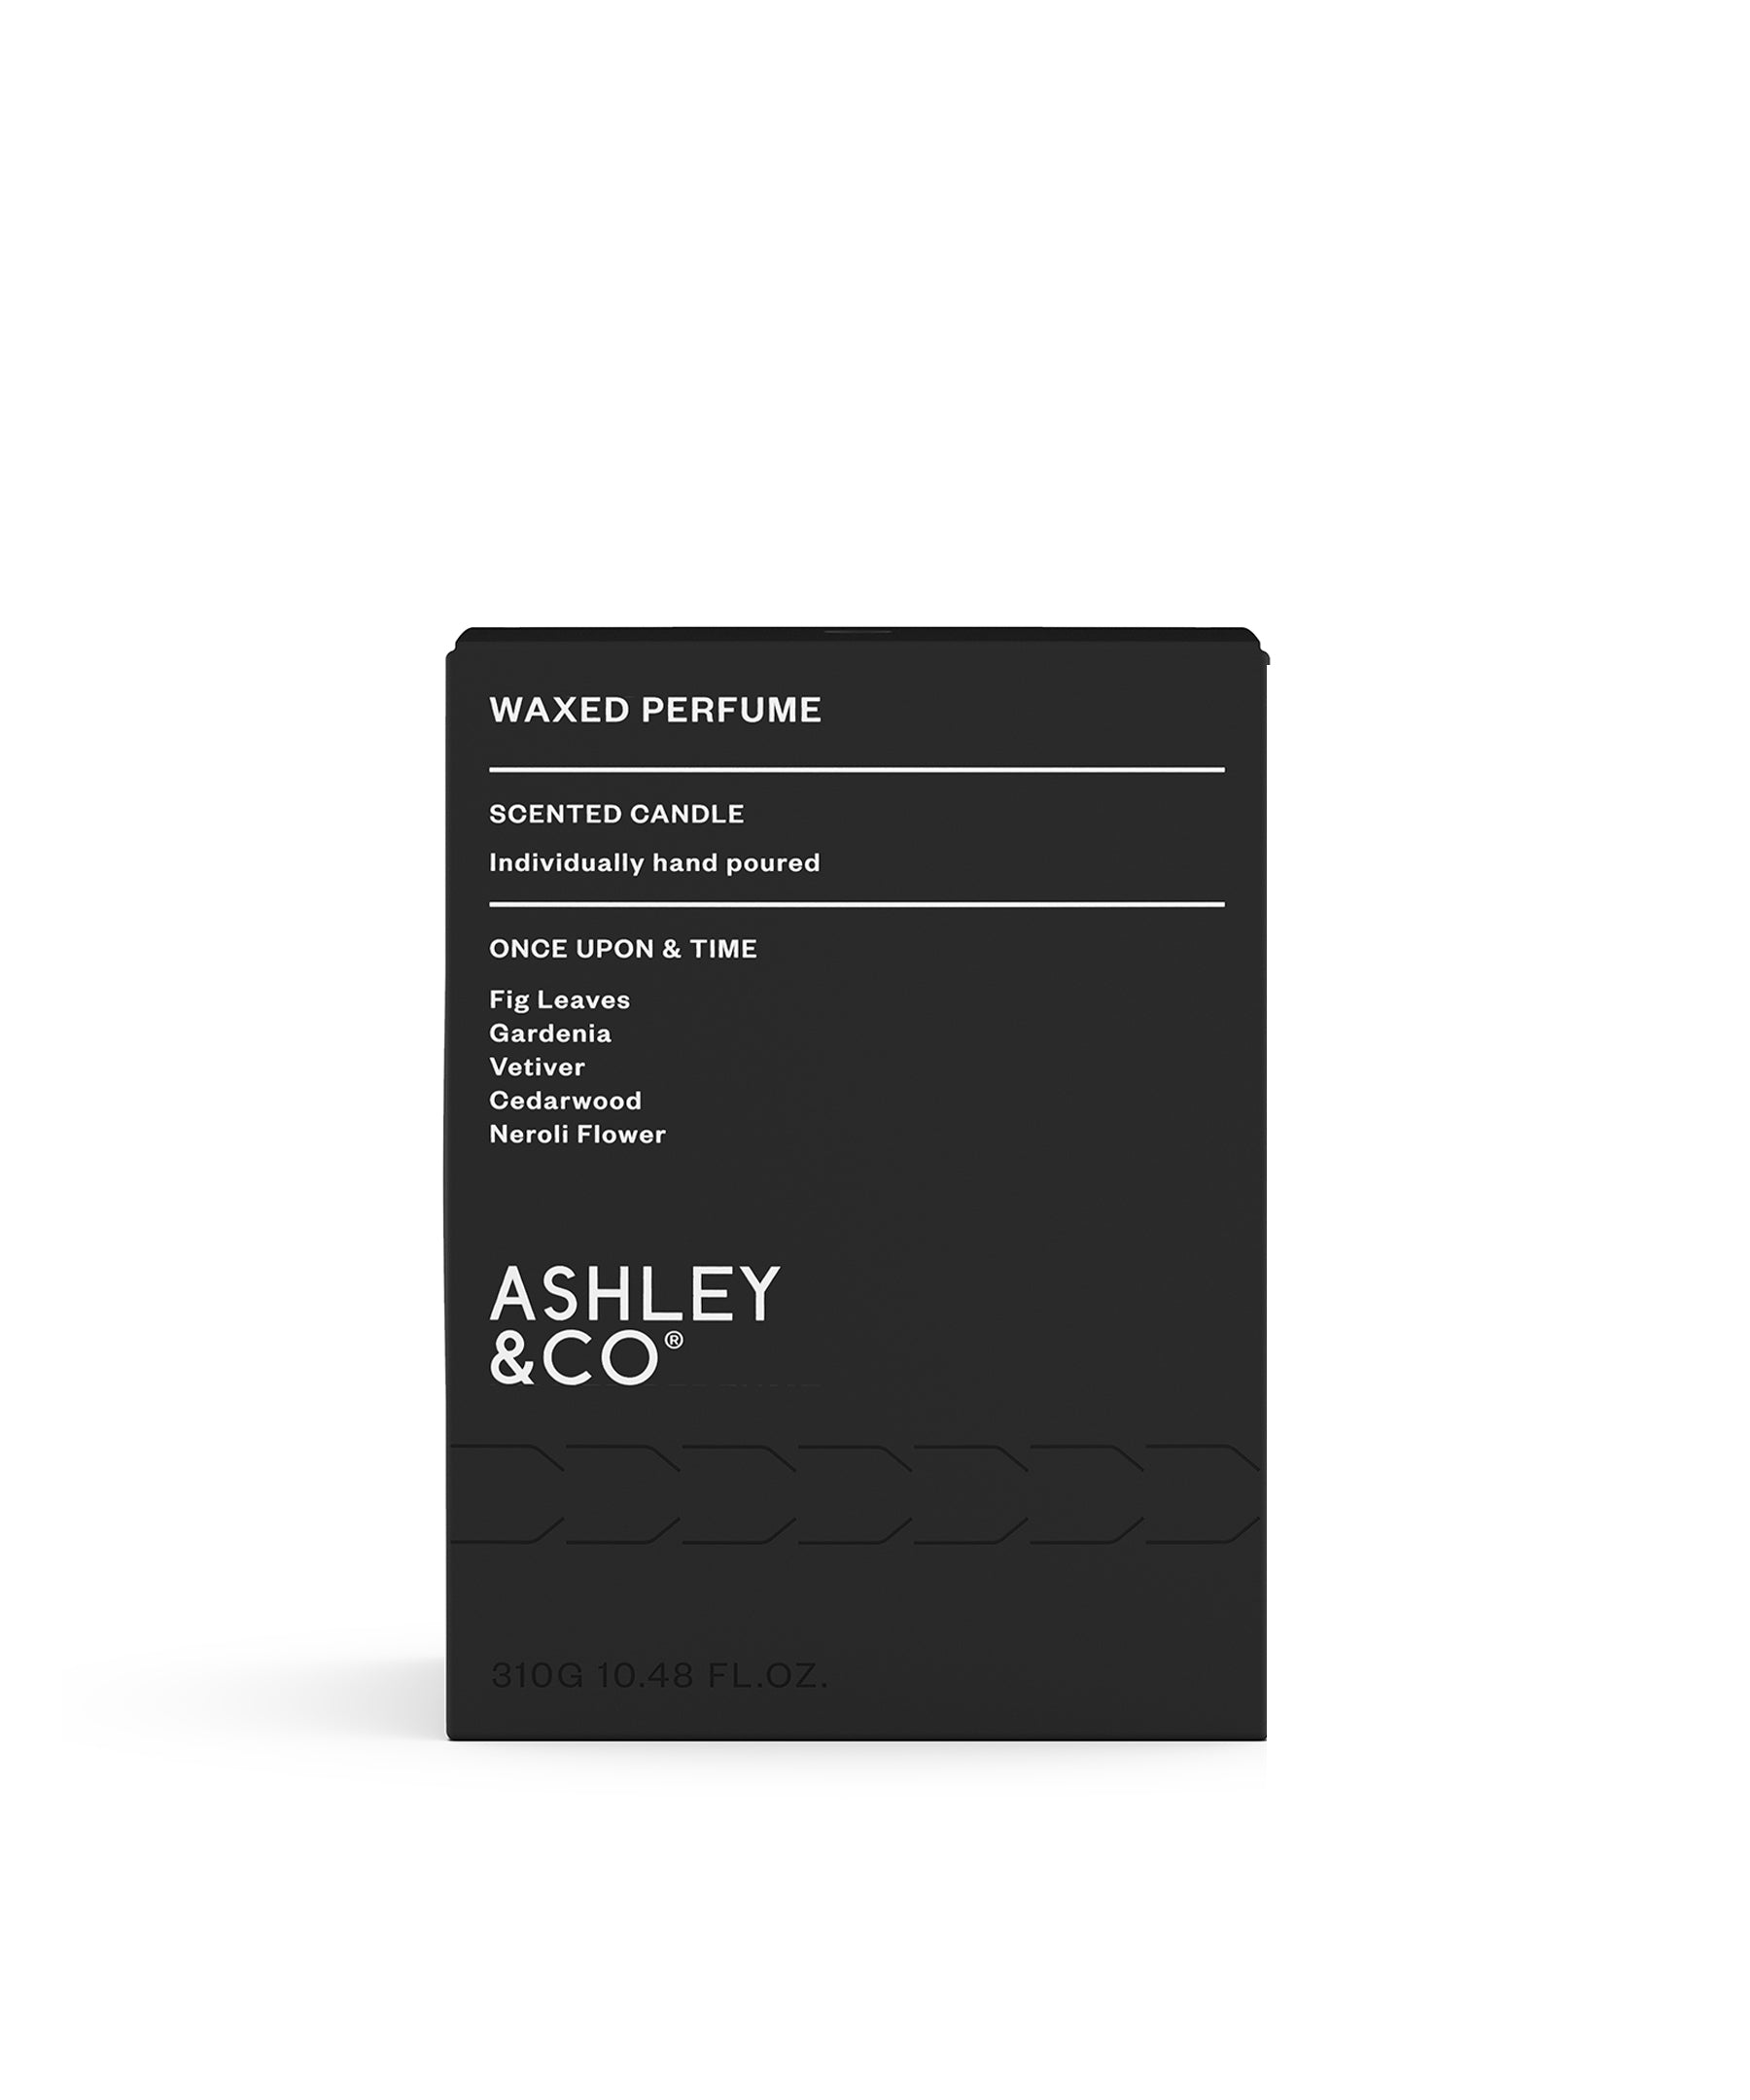 Once Upon & Time Waxed Perfume by Ashley & Co.